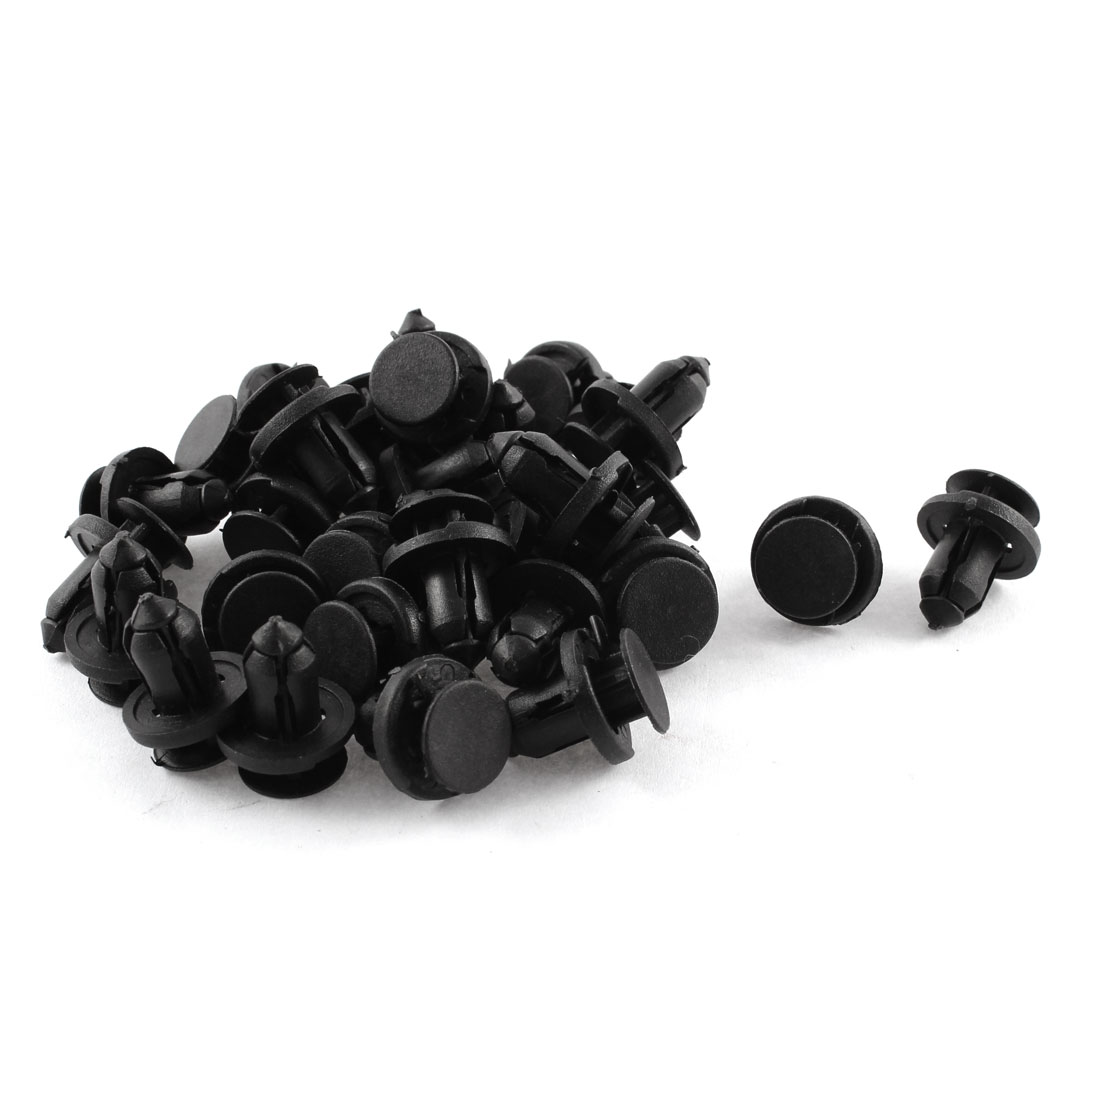 30 Pcs Black Plastic Rivet Push-Type Fastener Clips 8mm x 14mm x 16mm for Honda